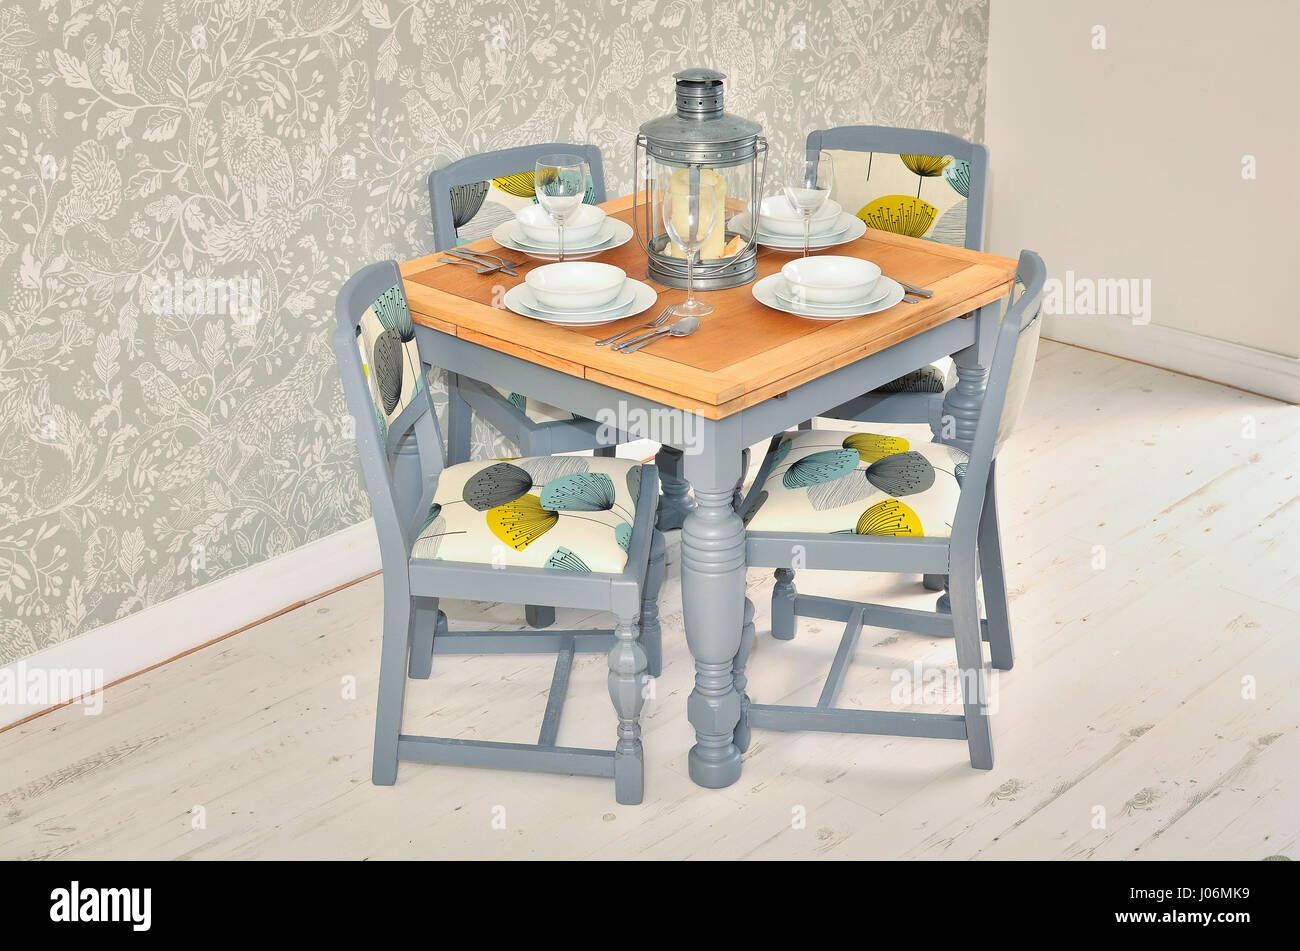 dining table stockfotos dining table bilder alamy. Black Bedroom Furniture Sets. Home Design Ideas